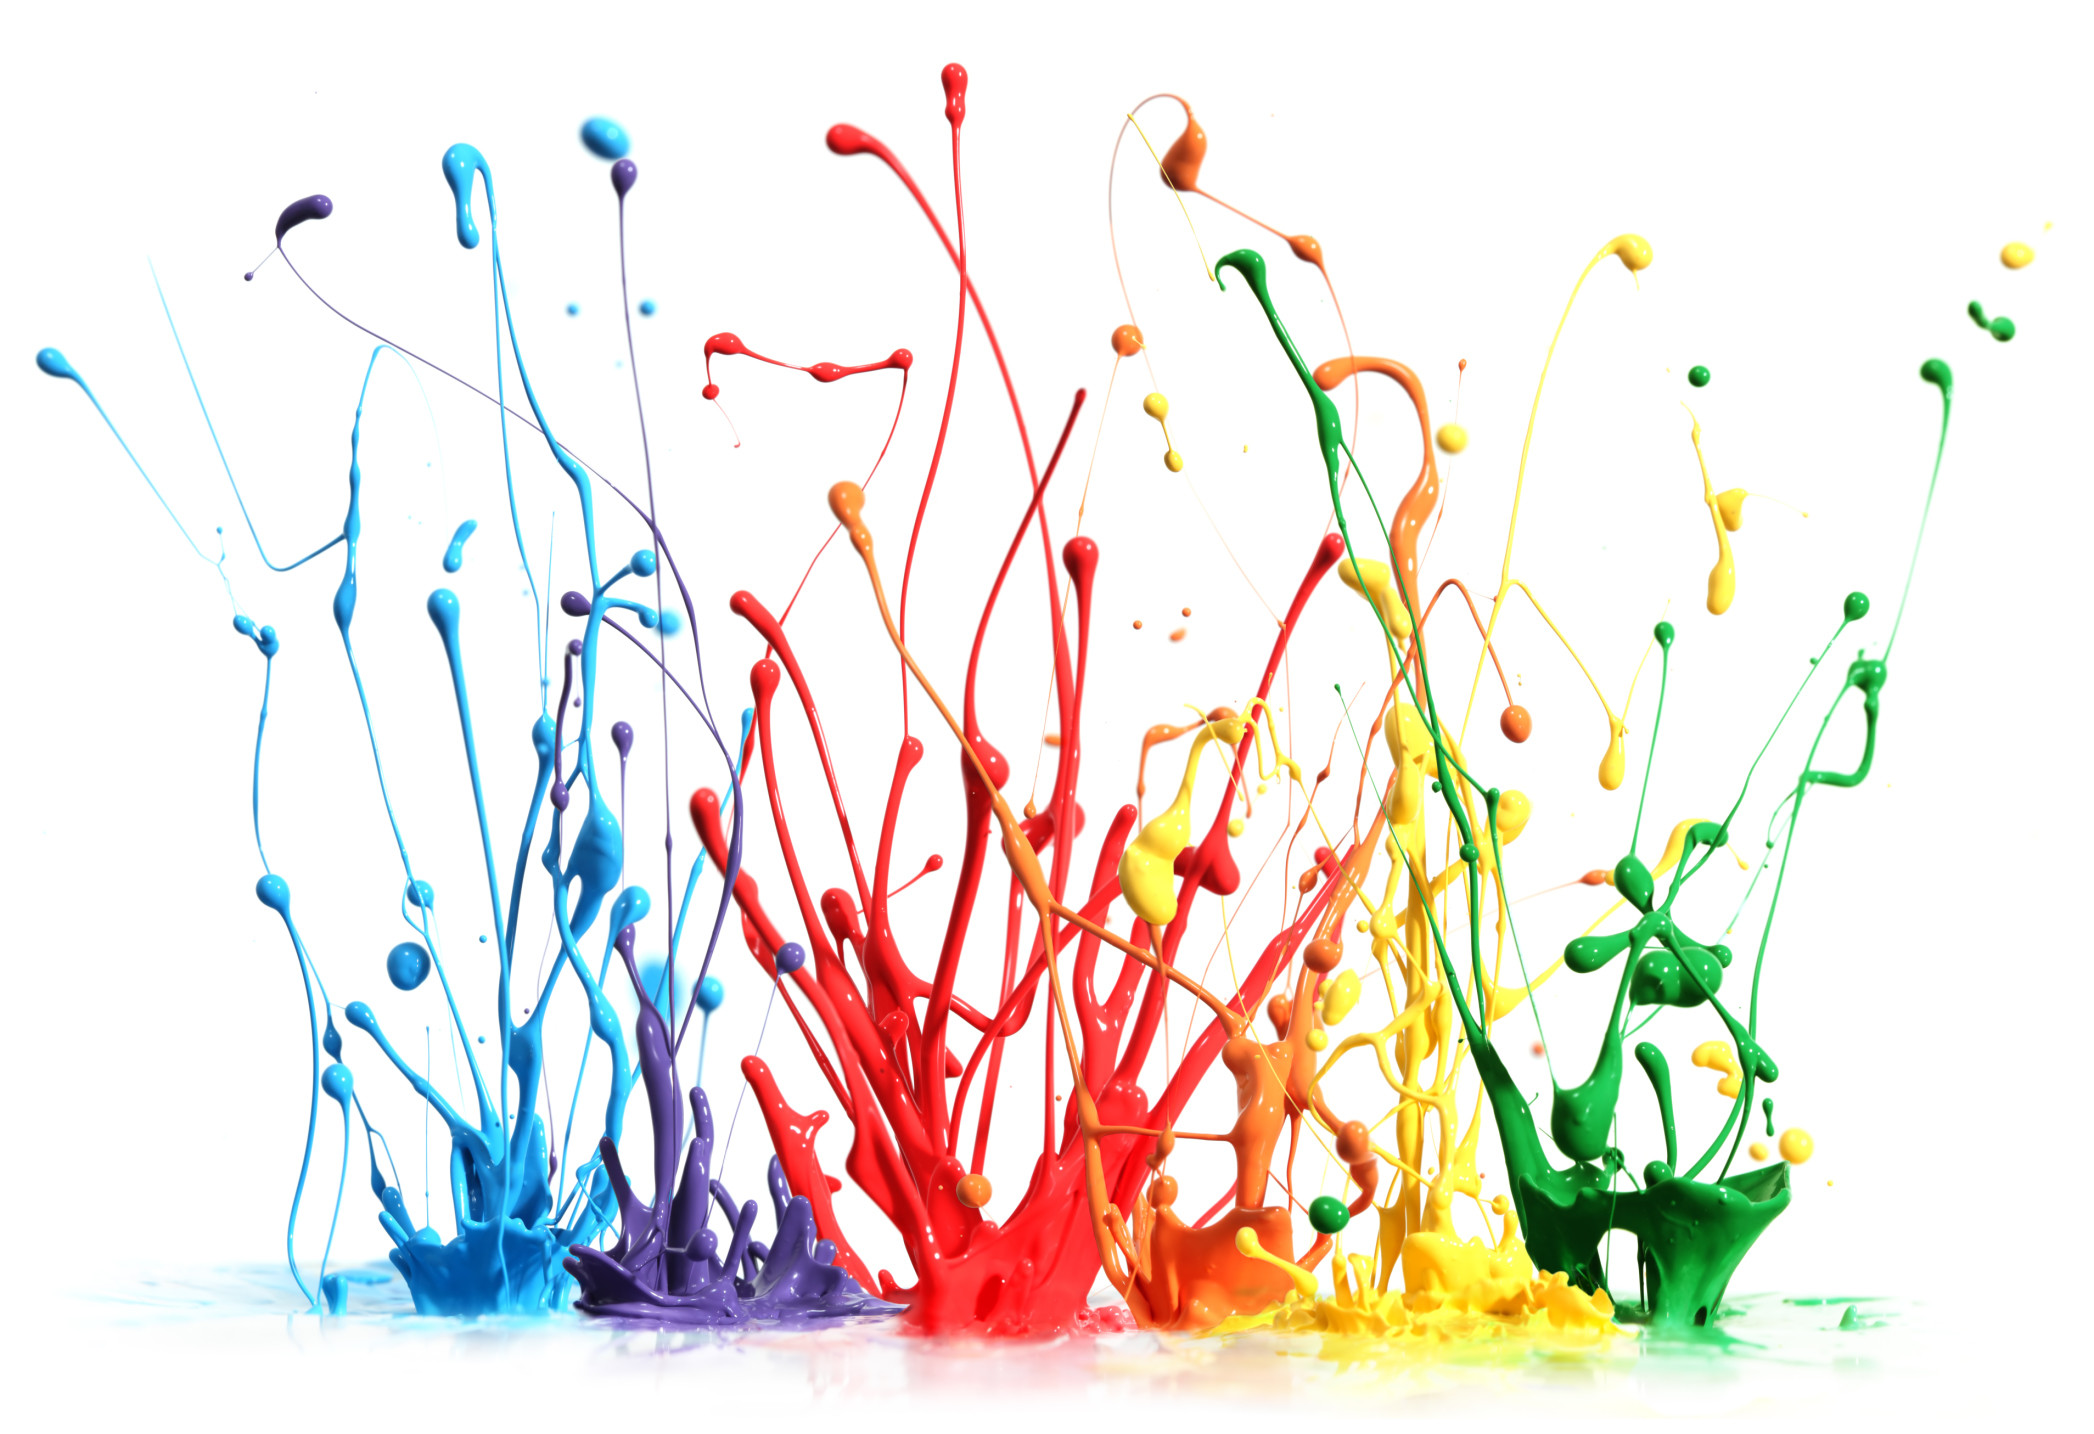 … paint splatter wallpaper 7545 umad com …